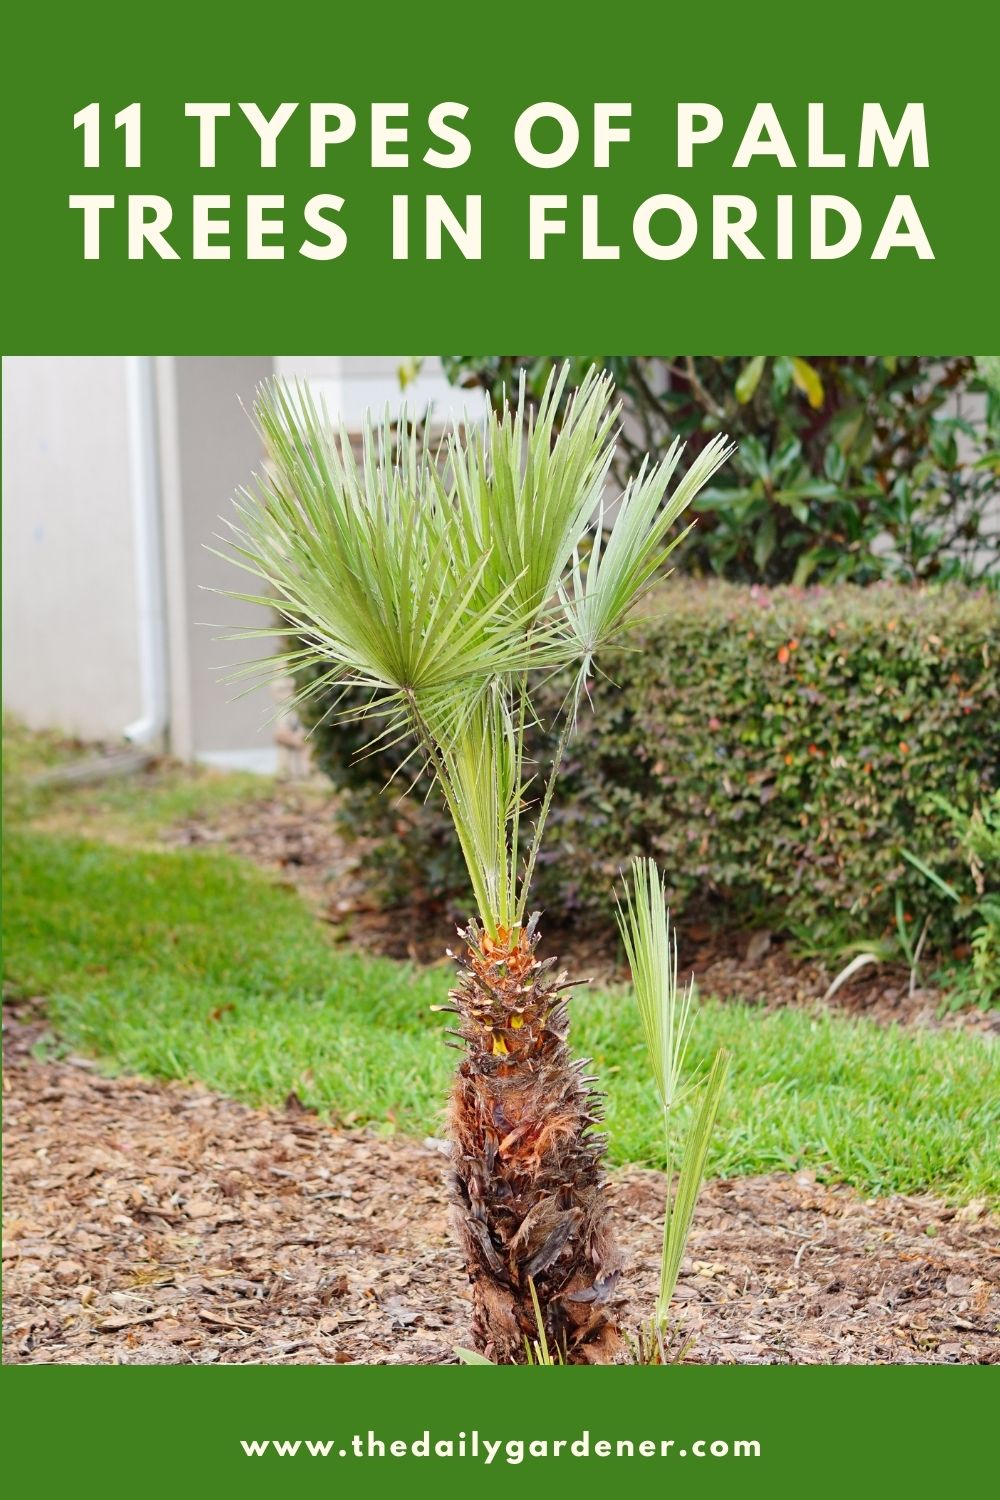 11 Types of Palm Trees in Florida 2